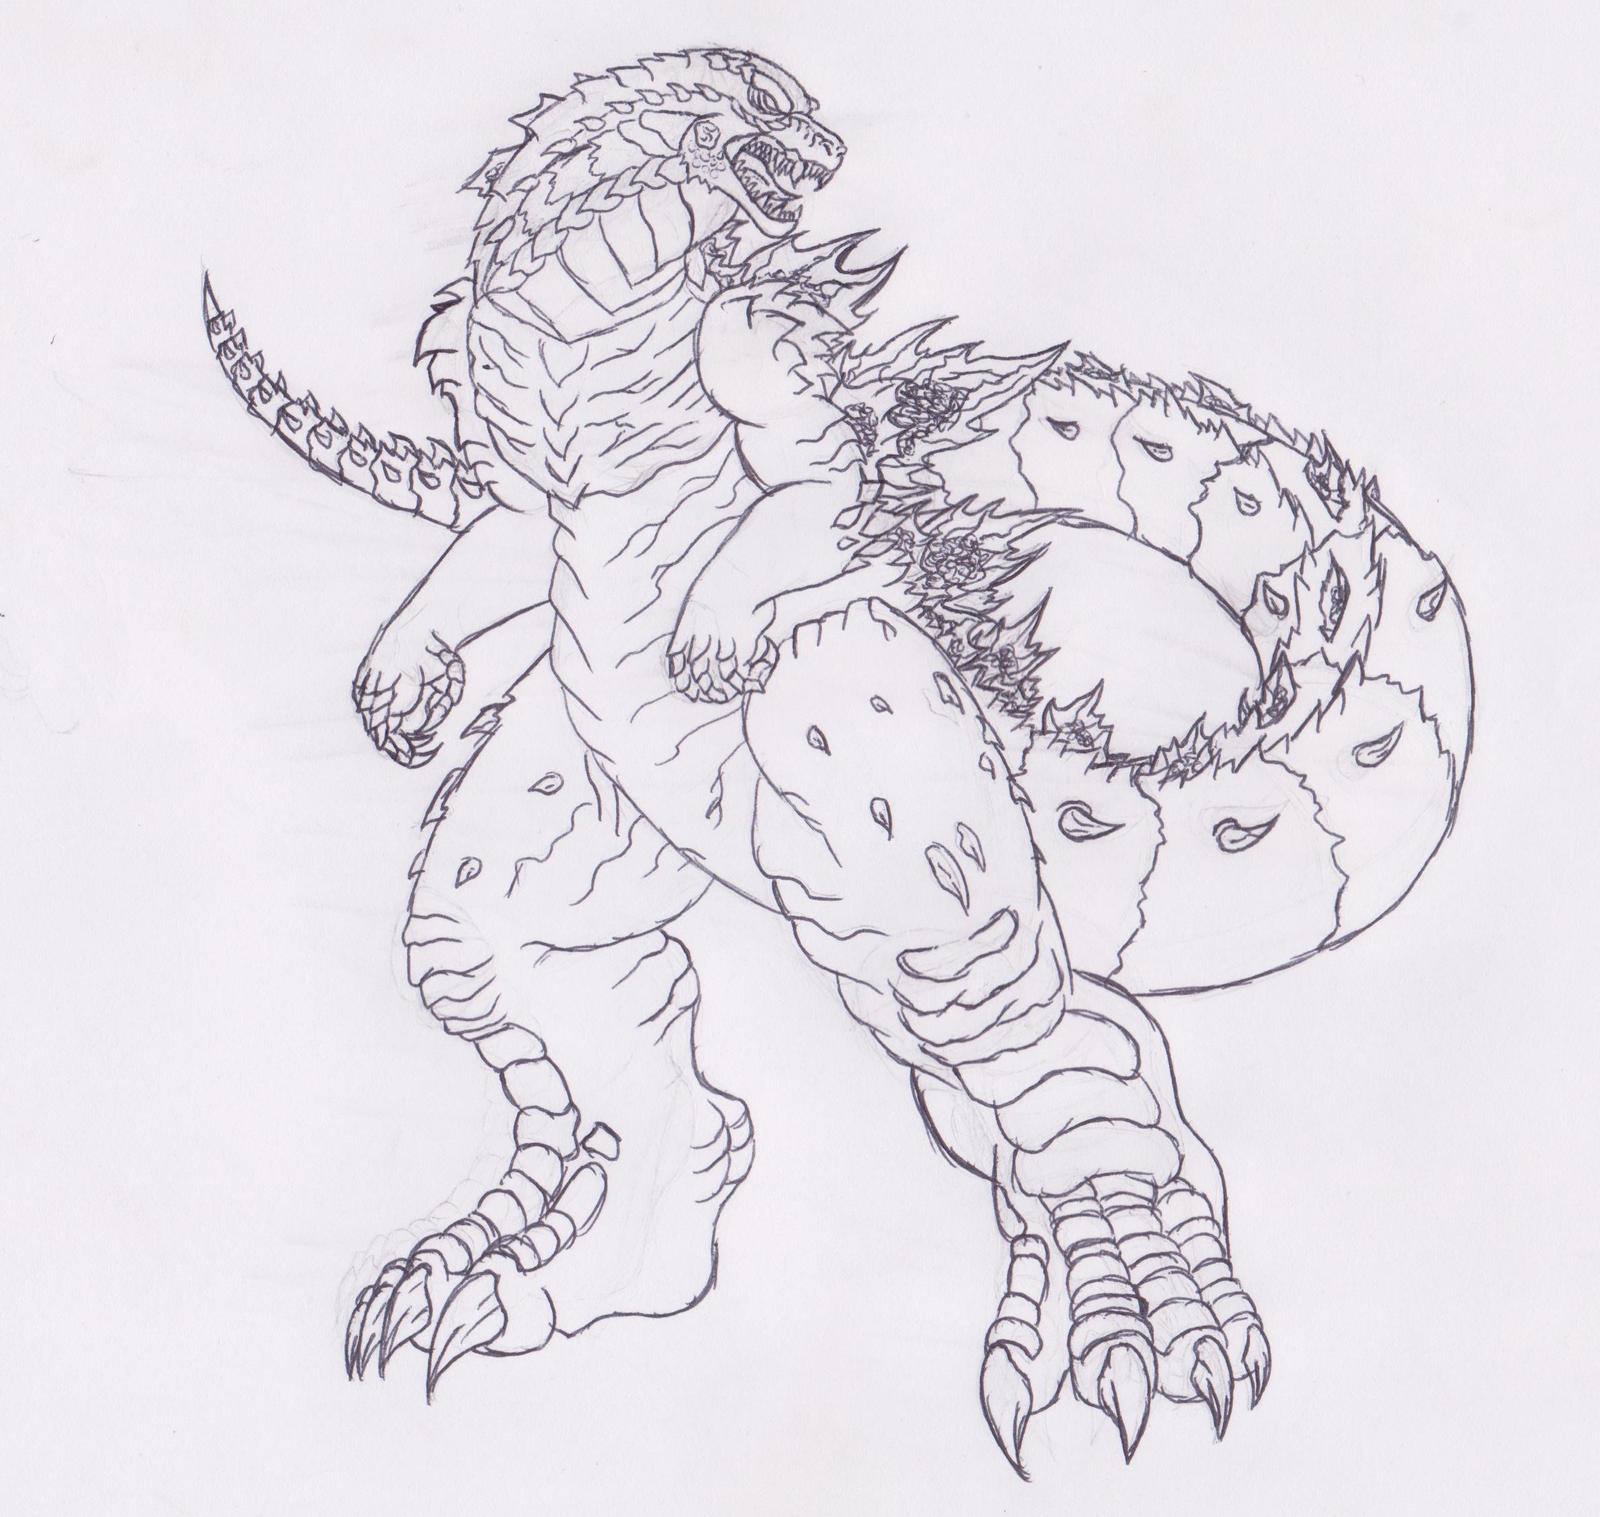 my fan made design of Godzilla 2014 by Pyrus-Leonidas